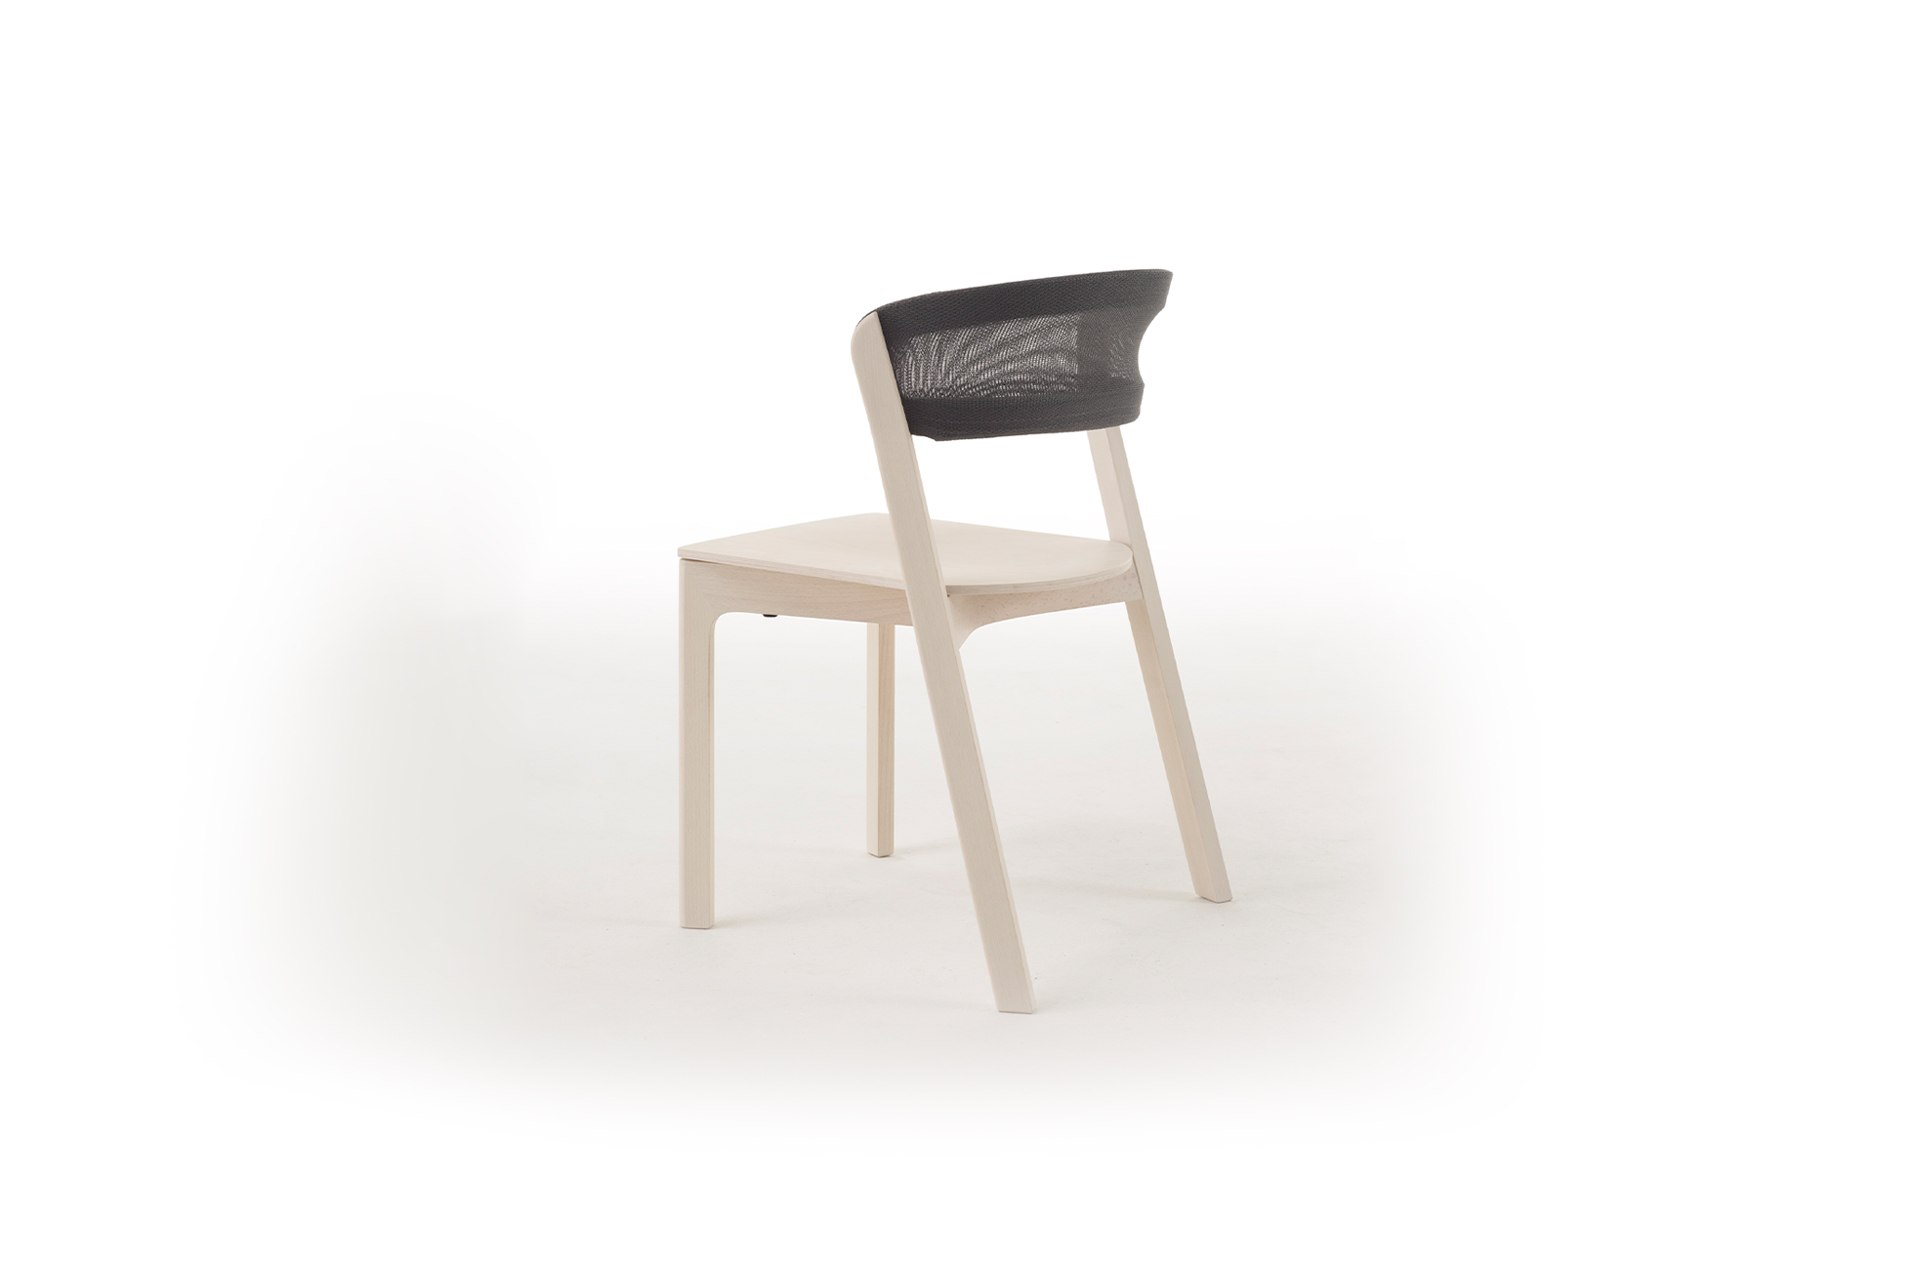 Design stoel Cafe Chair | Design stoel van Arco